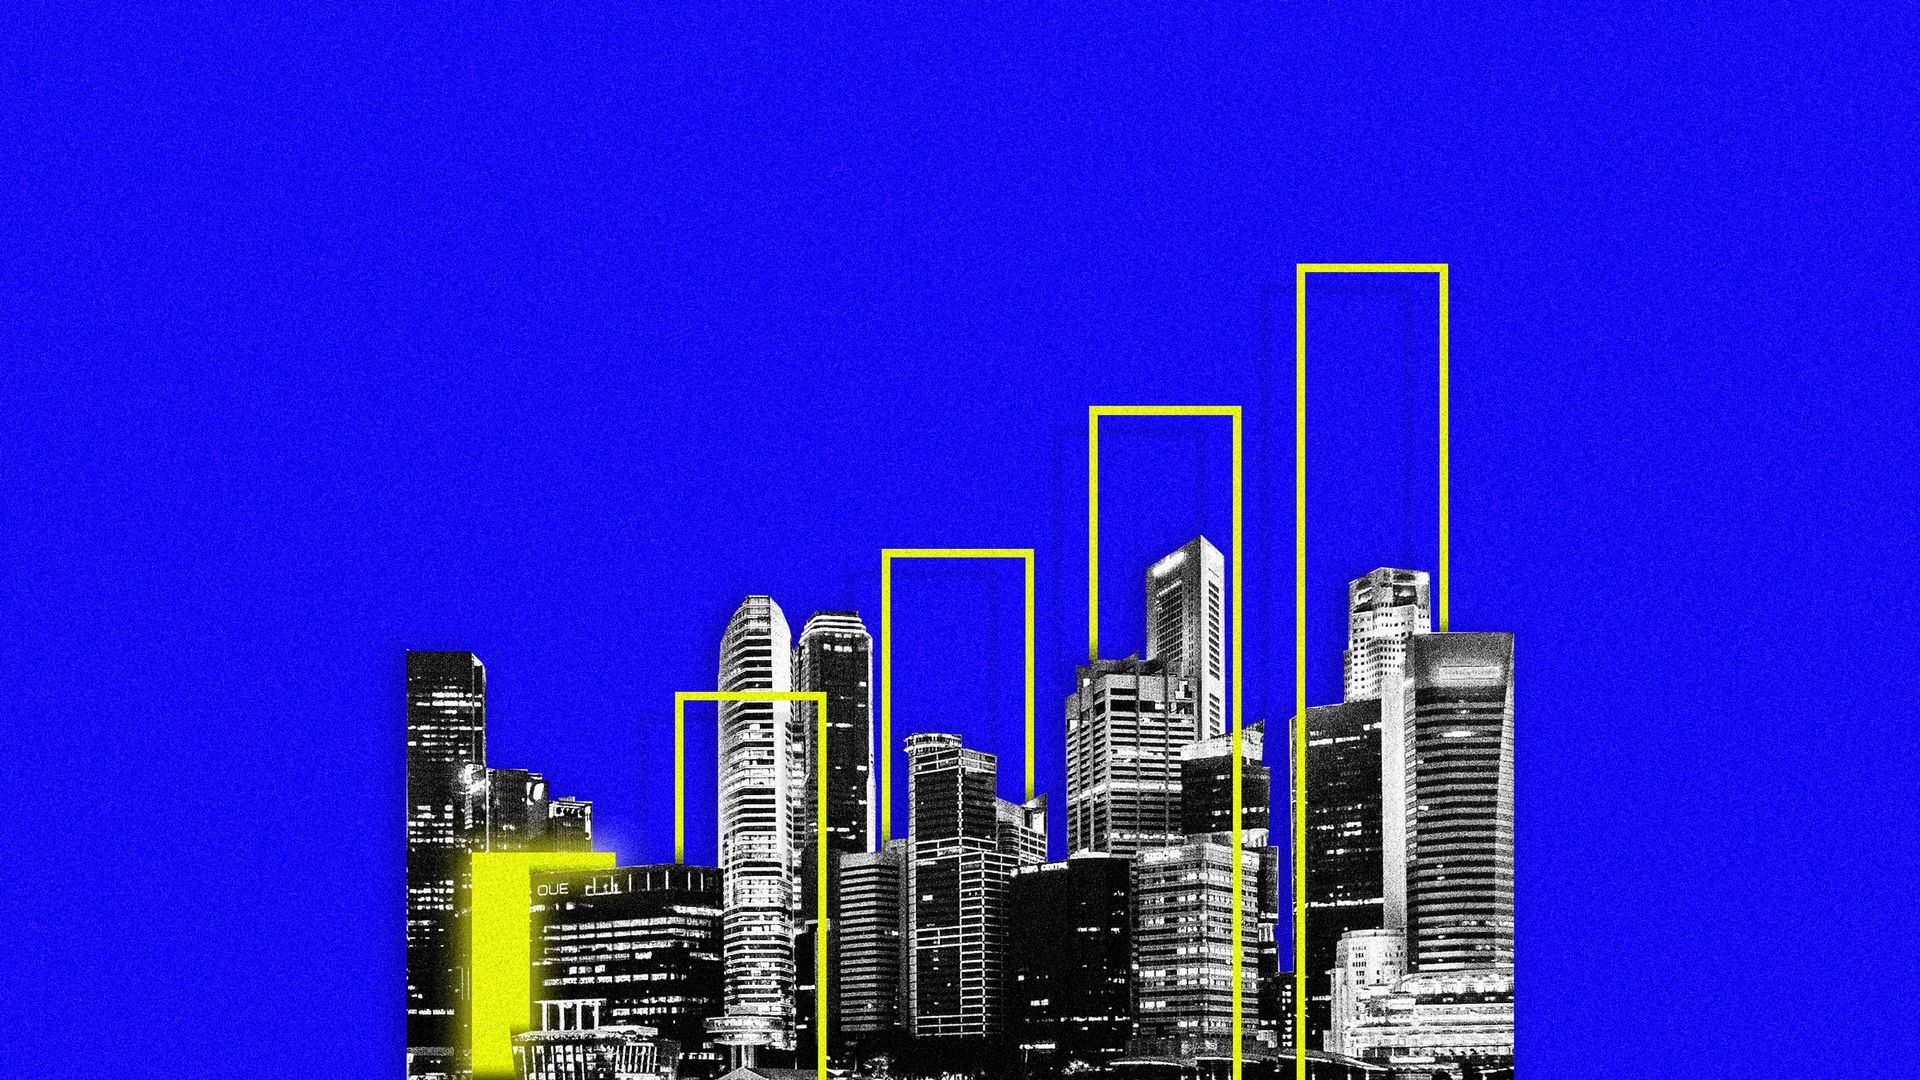 an illustration of a city with cell service bars overlaid